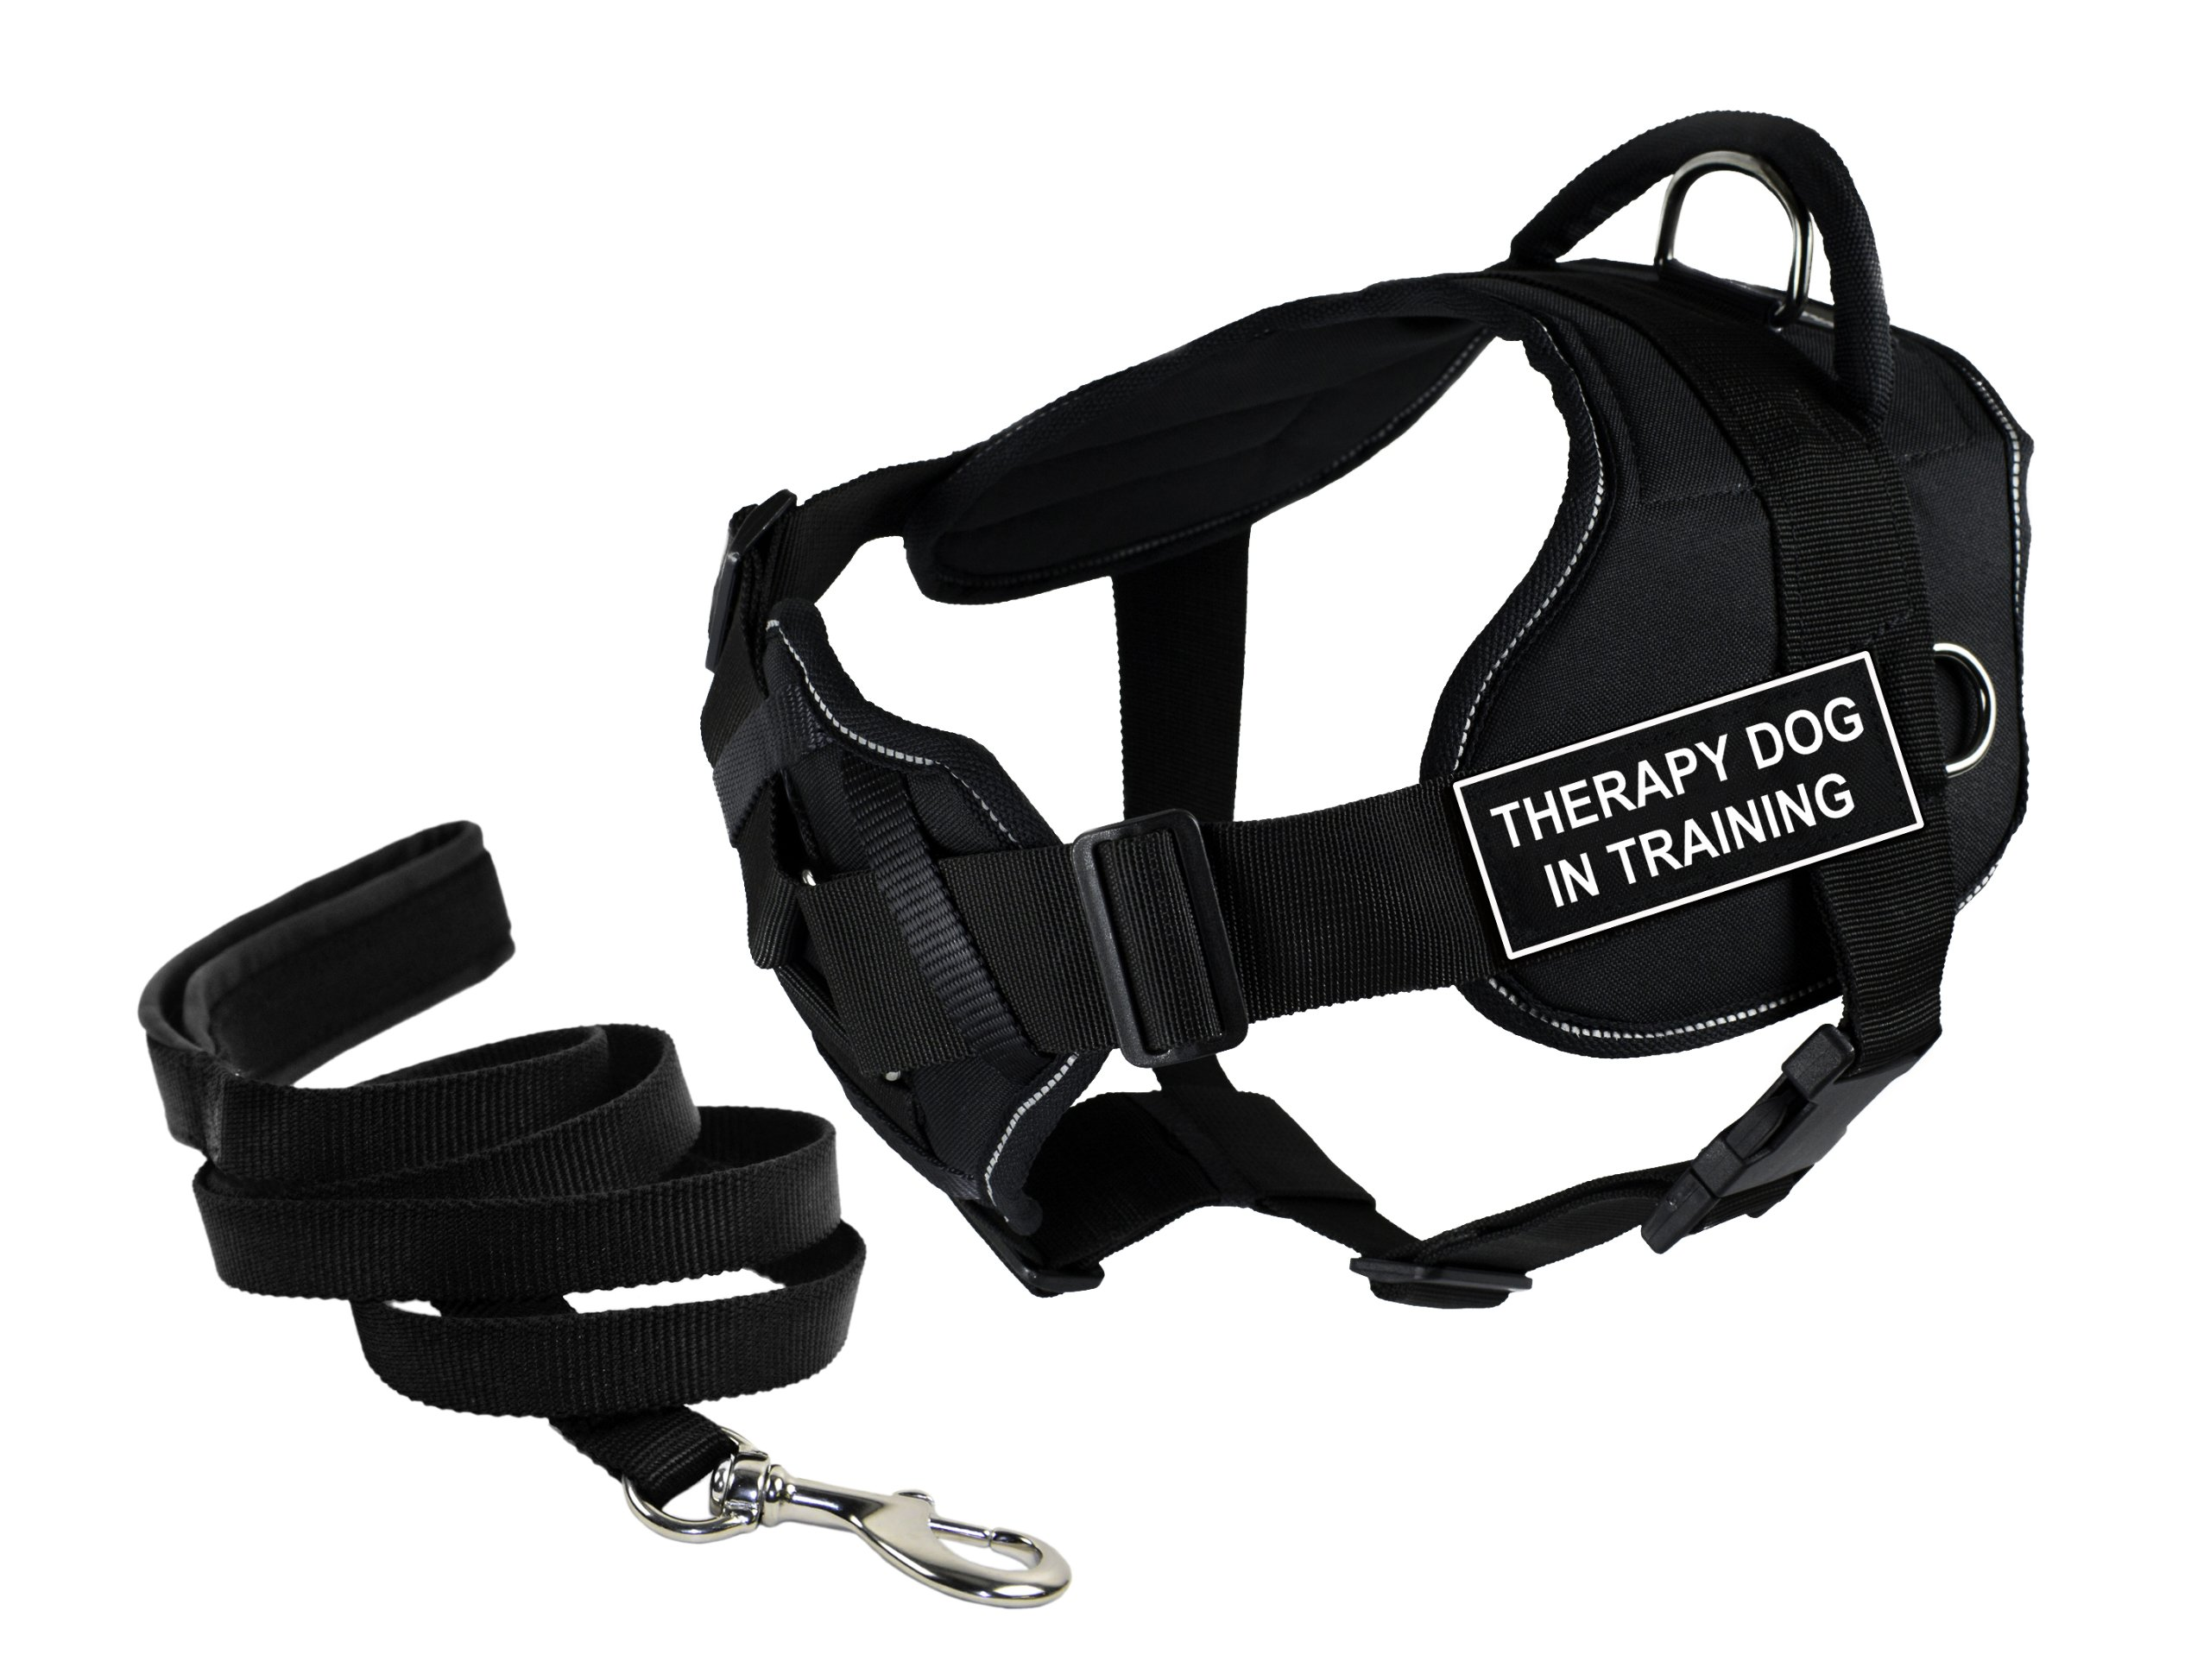 Dean & Tyler's DT Fun Chest Support ''THERAPY DOG IN TRAINING '' Harness with Reflective Trim, Small, and 6 ft Padded Puppy Leash.